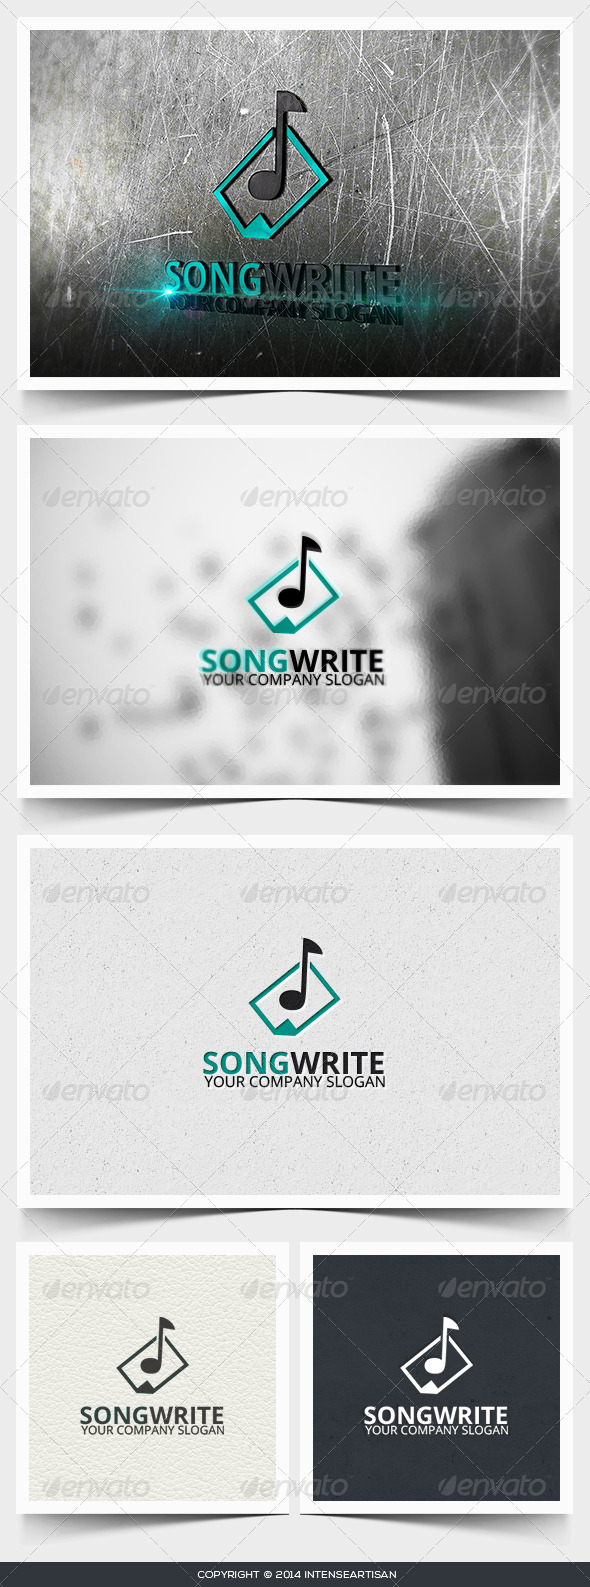 Song Write Logo Template - Objects Logo Templates